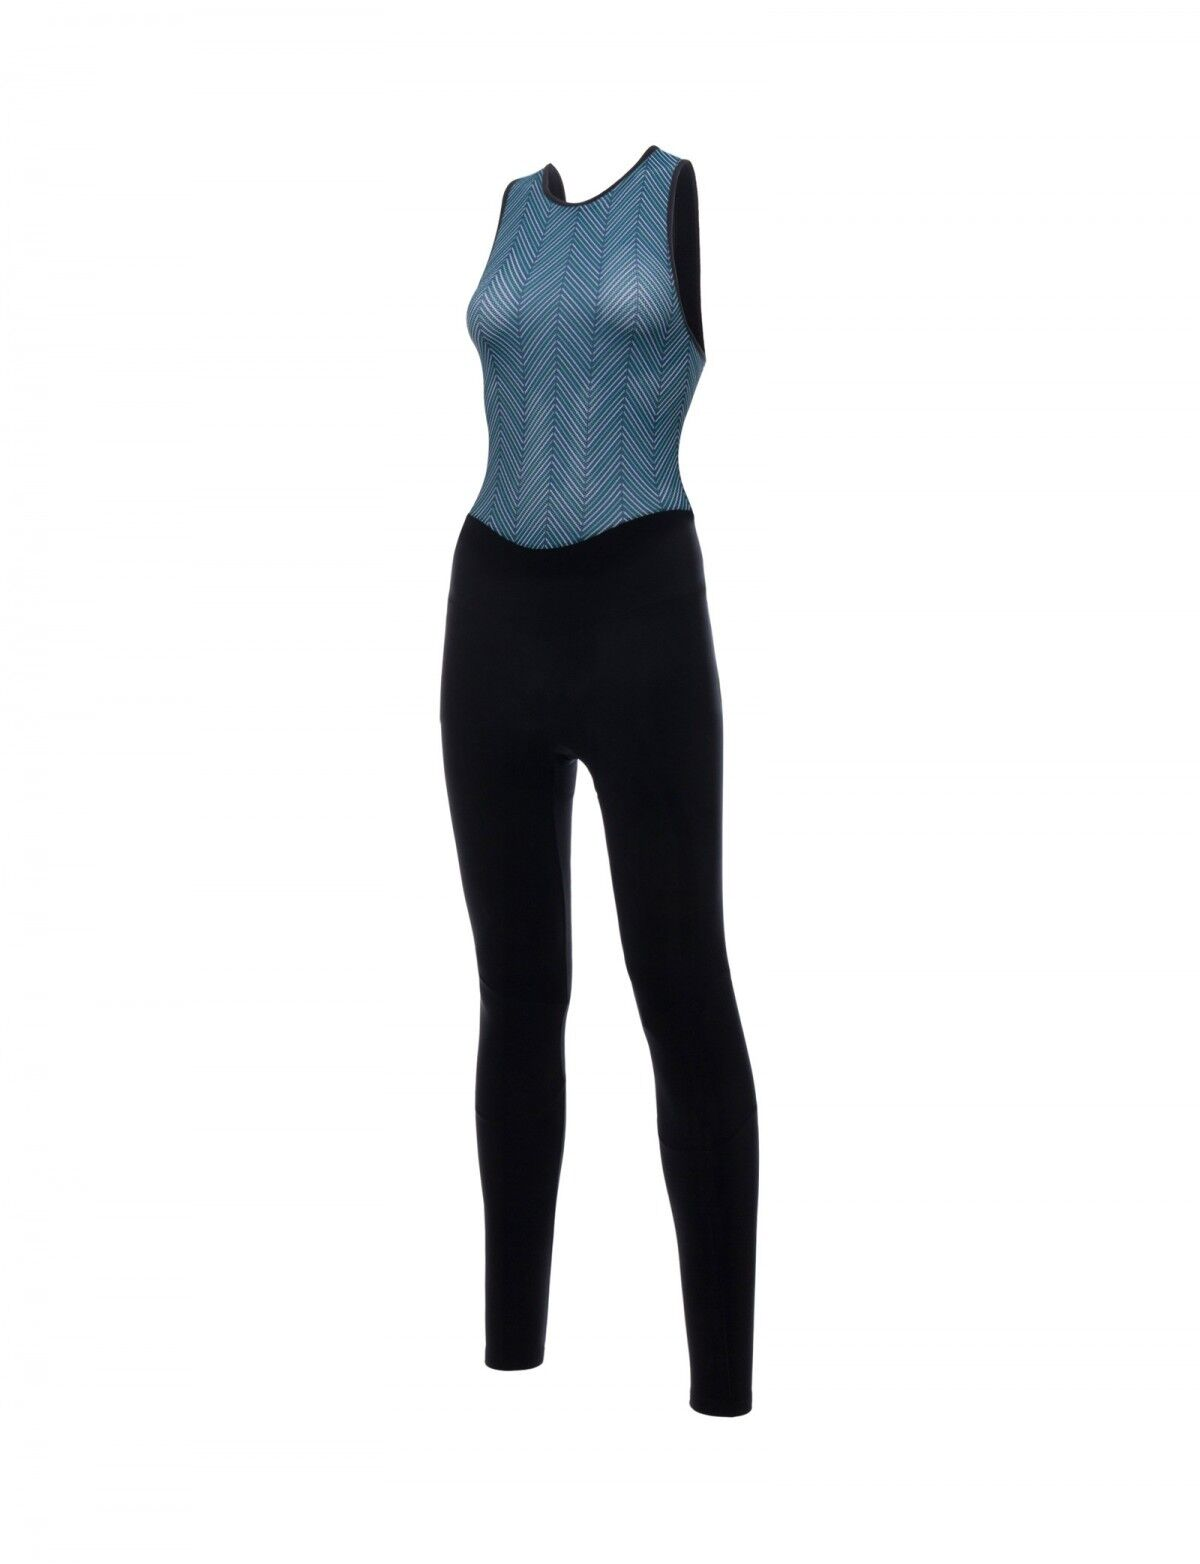 SMS SANTINI CORAL TIGHTS.WATER. 2.0  THERMAL BIB TIGHTS.WATER. CORAL LADY CUT. SIZE XL 01fe3a